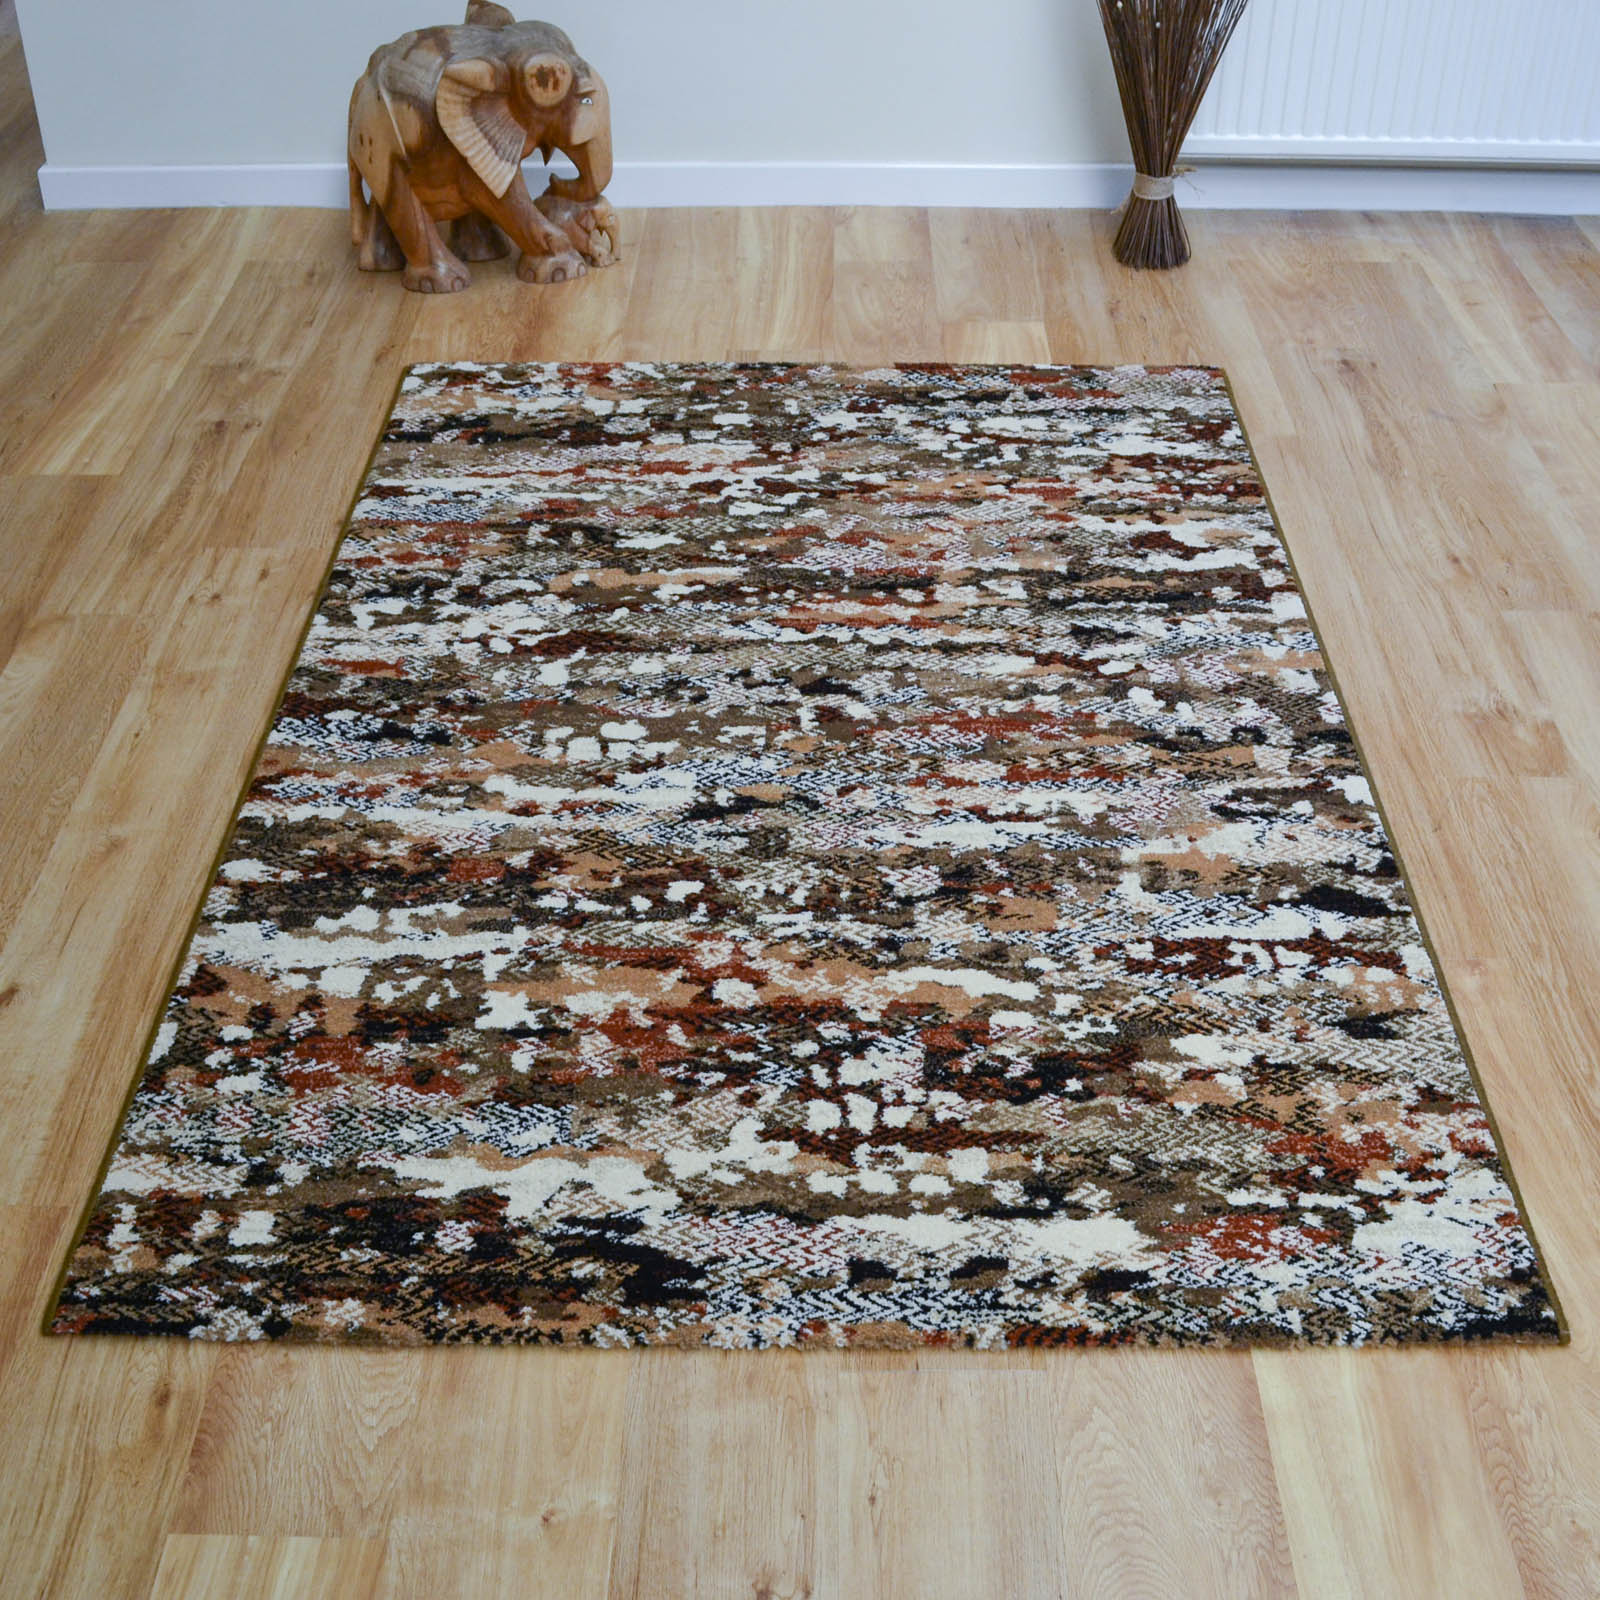 Woodstock Rug Brown Multi 32233/6233